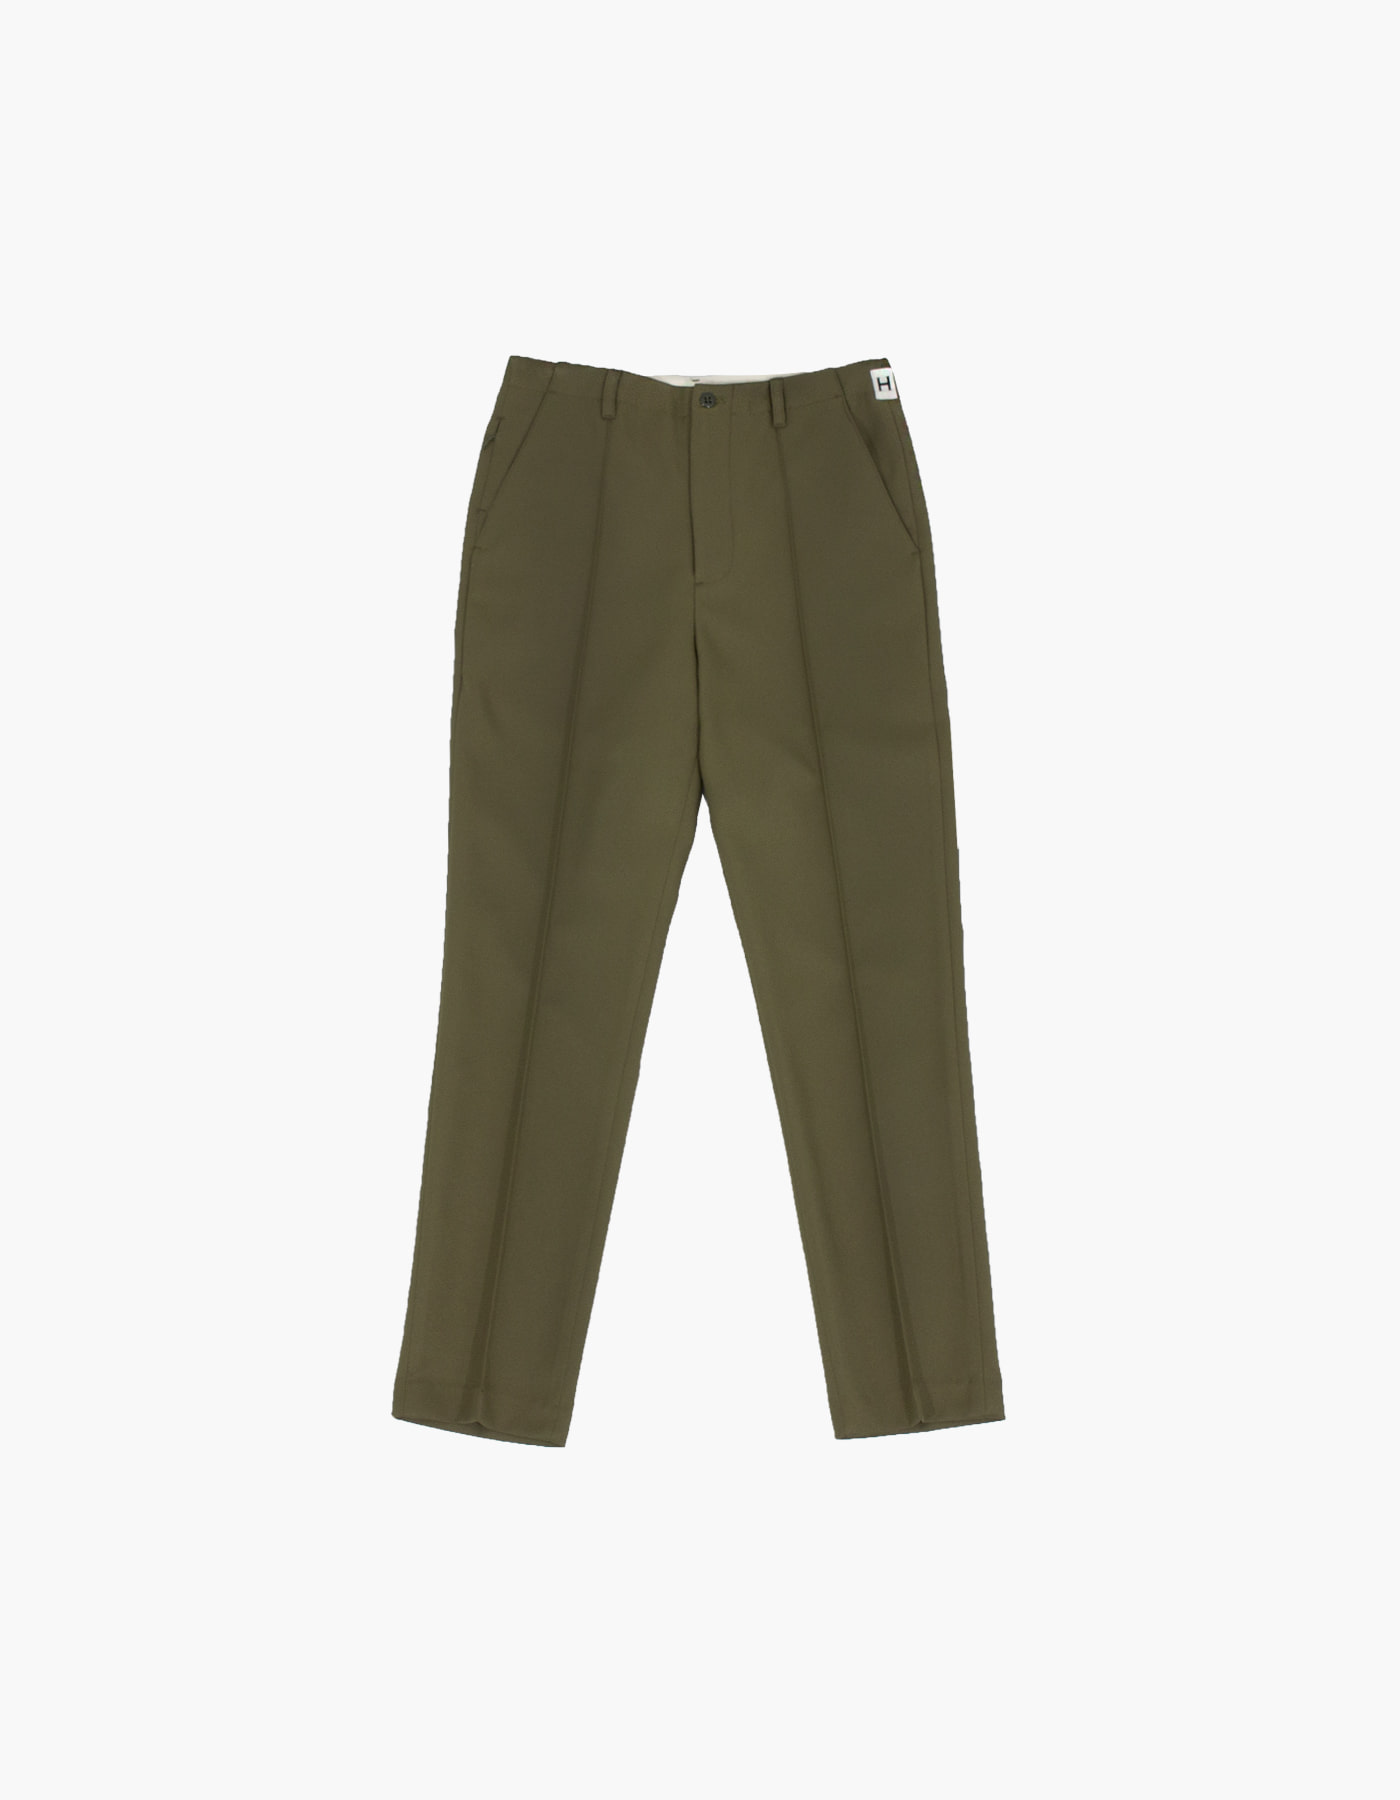 851 PIN TUCK CHINO PANTS / KHAKI